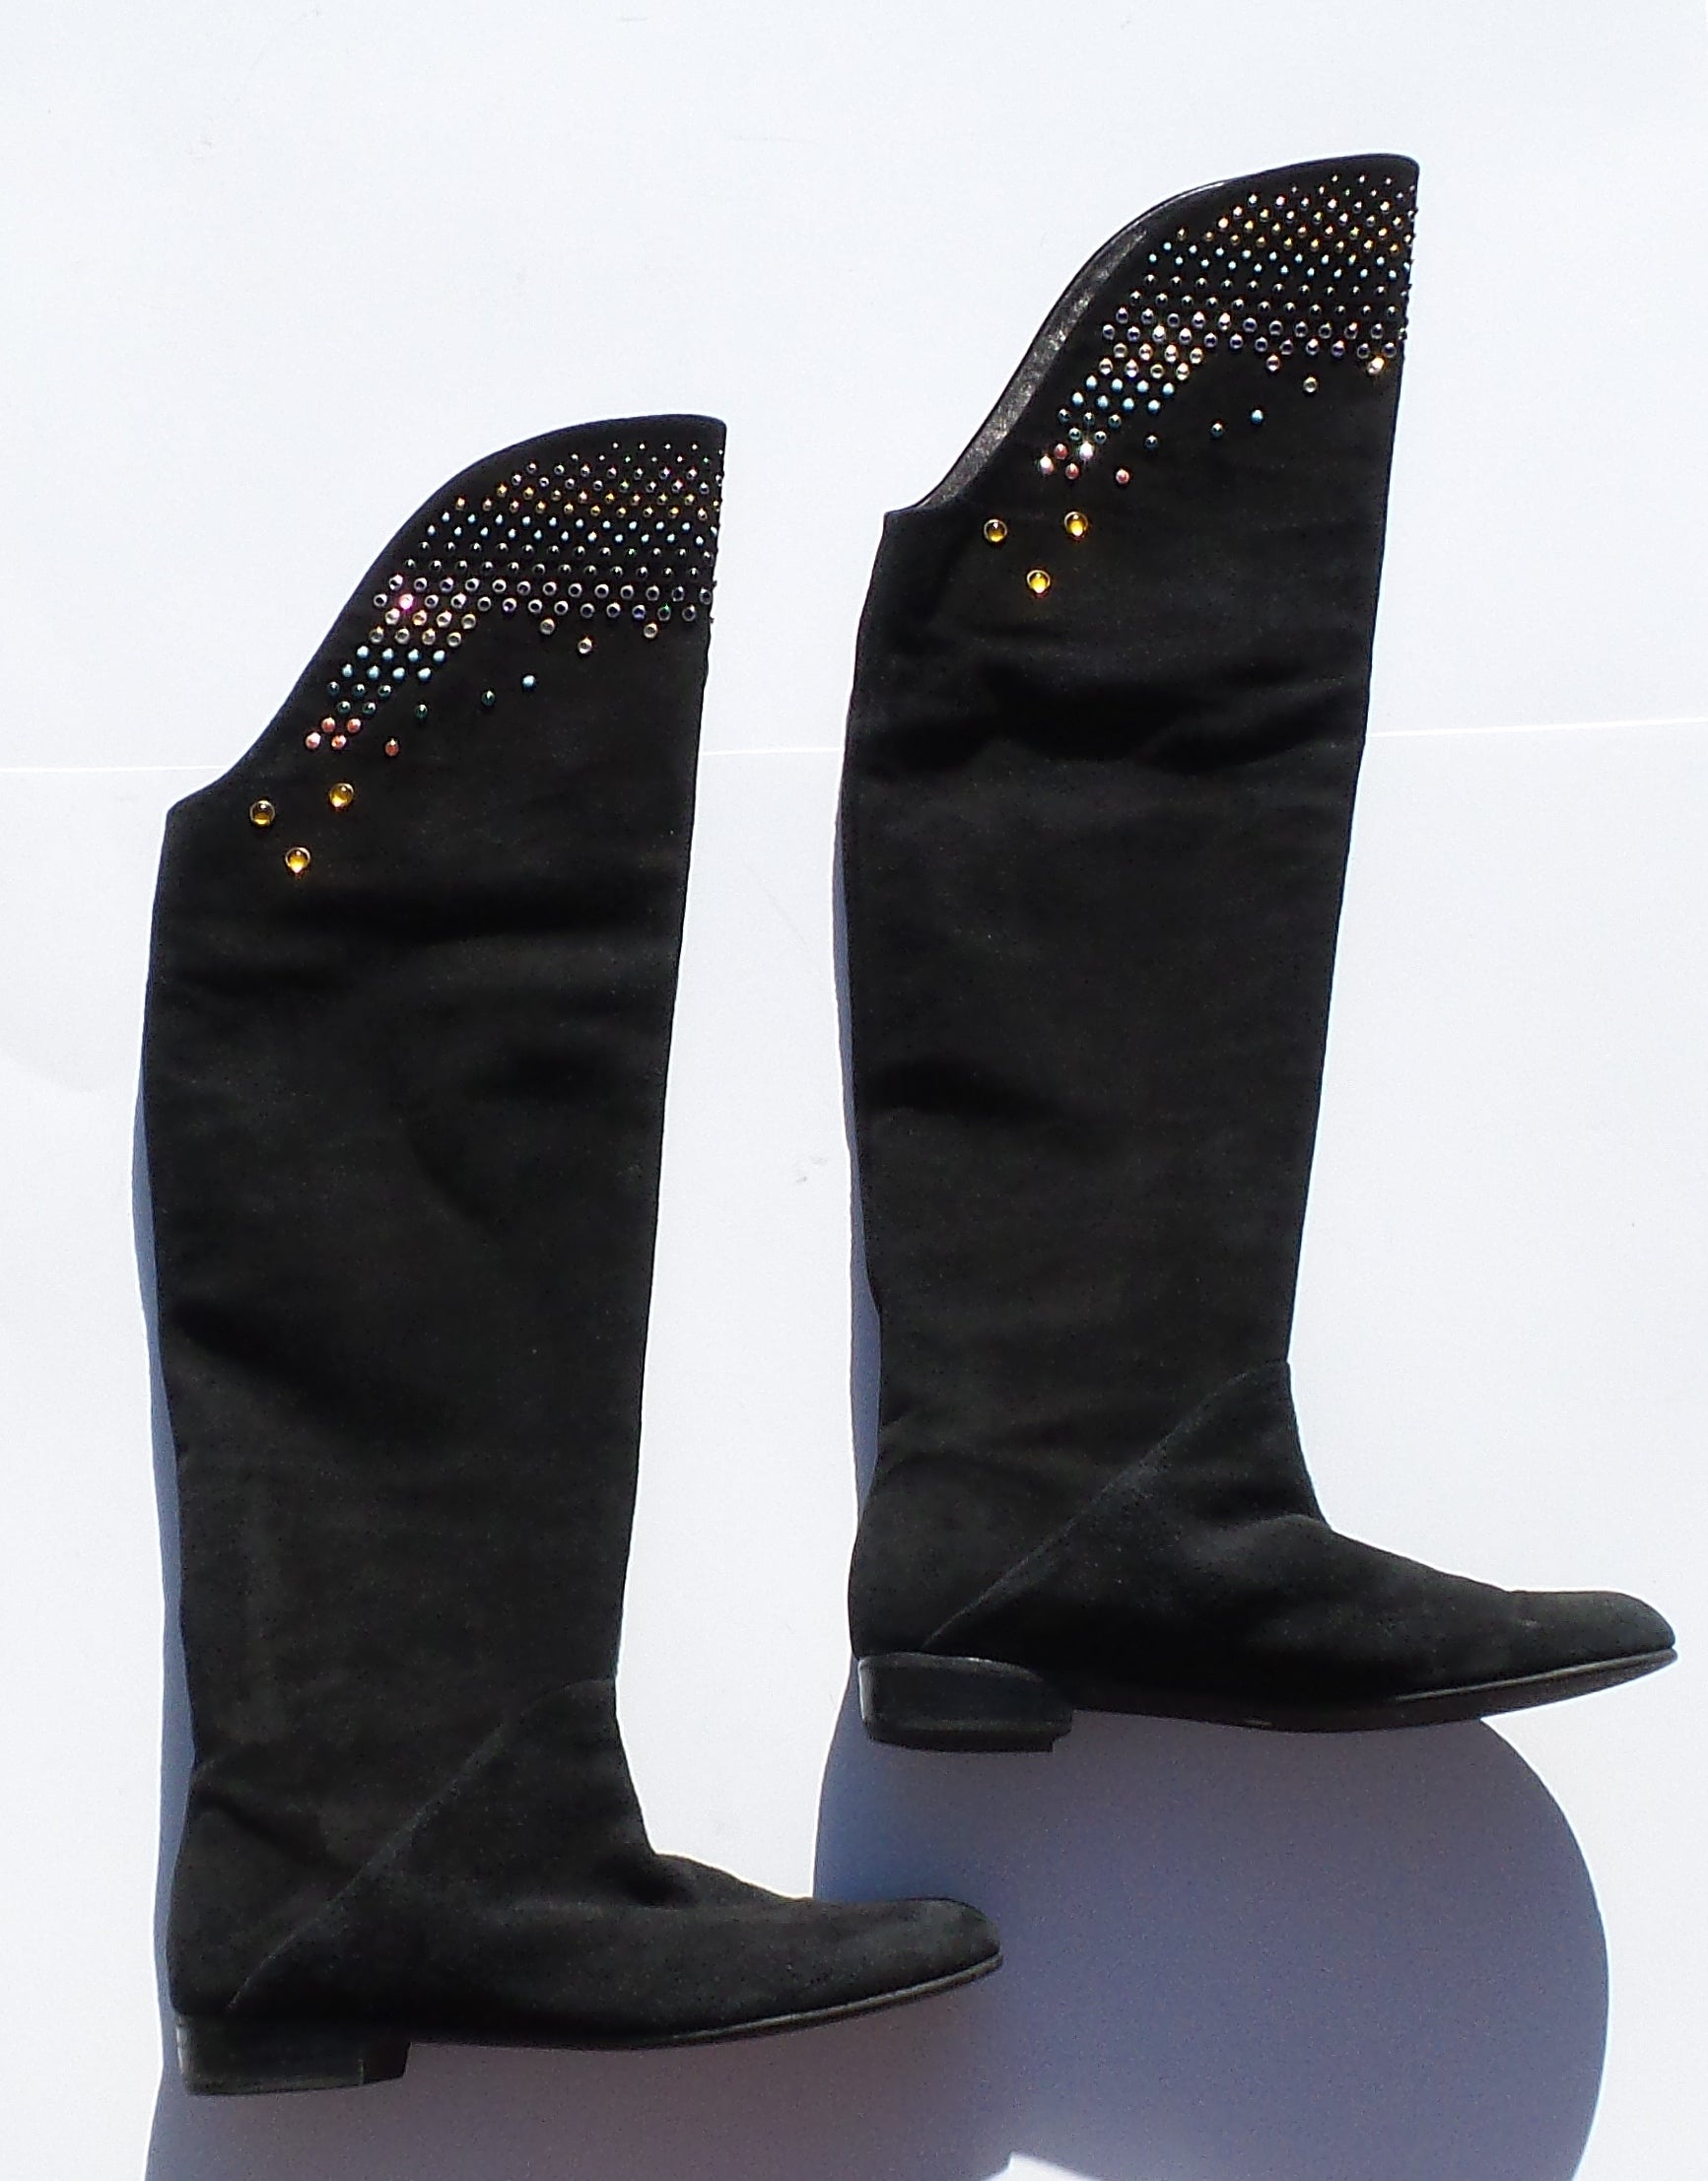 GIUSEPPE ZANOTTI Black Suede Multi Crystal Studded Over the Knee Boots 41